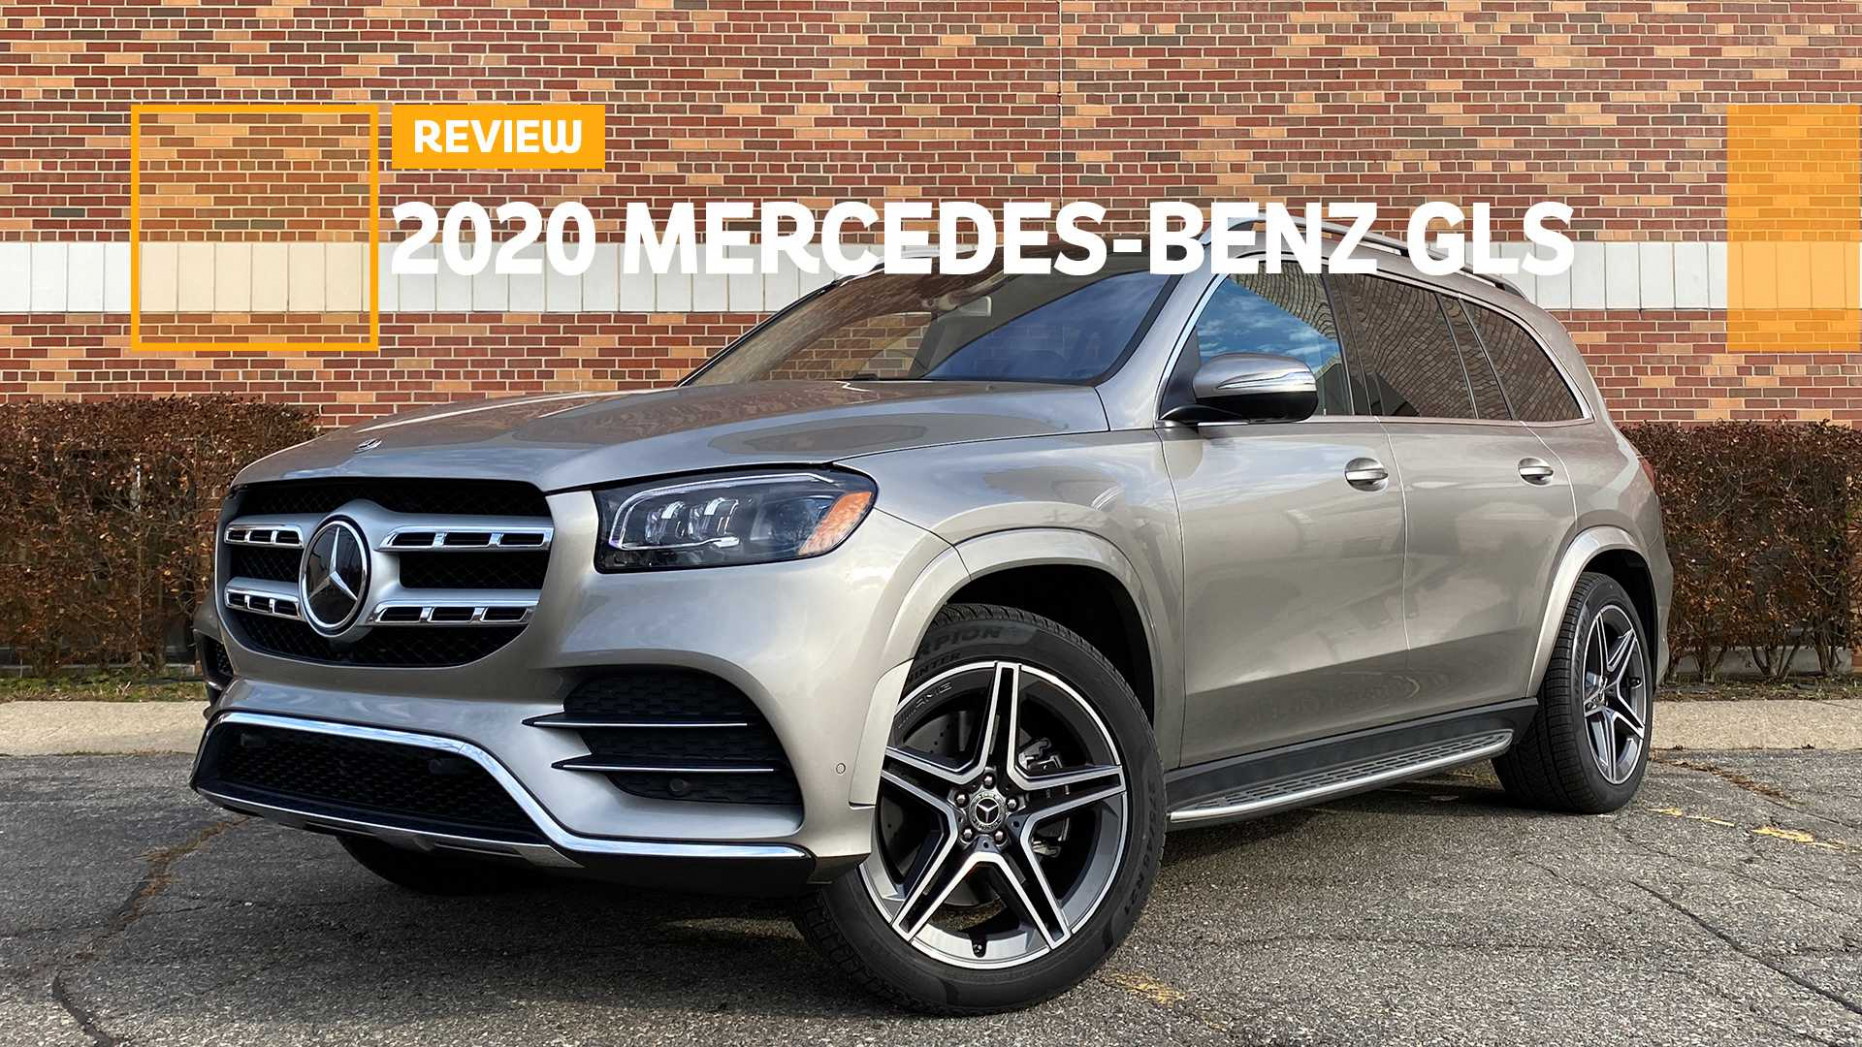 7 Mercedes-Benz GLS 7 Review: Earning The S - 2020 mercedes usa